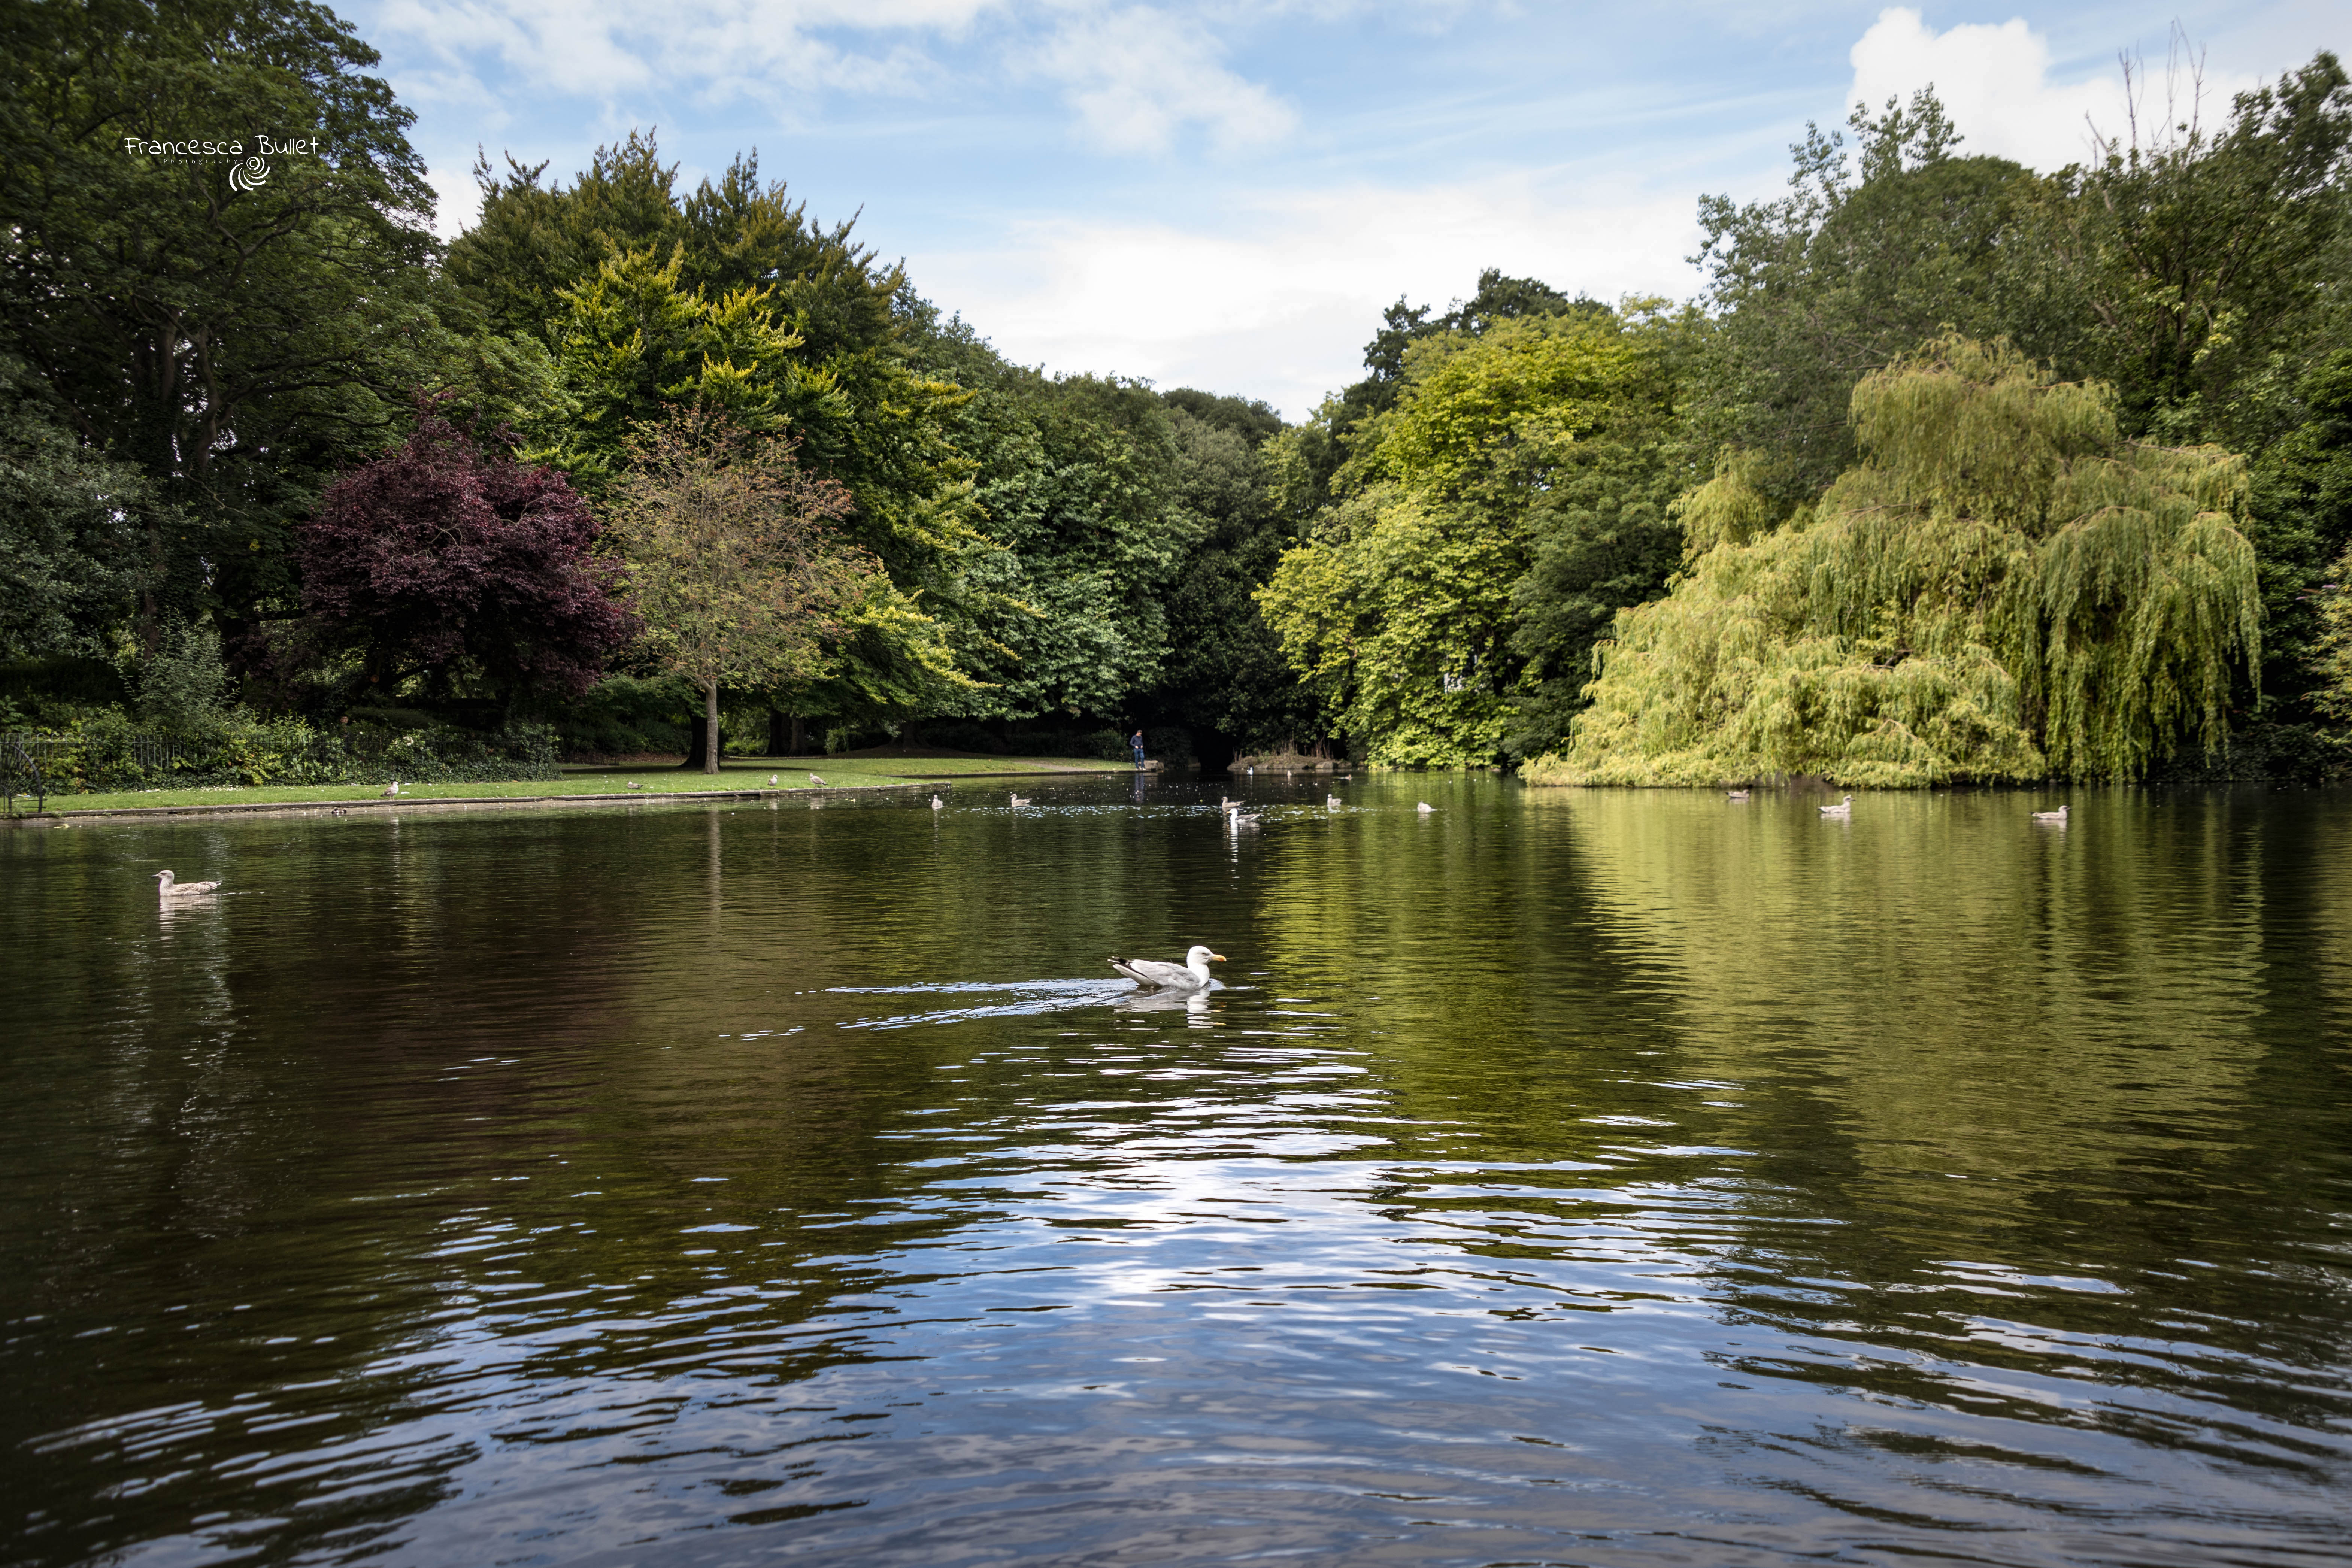 Ireland, St Stephen's Green